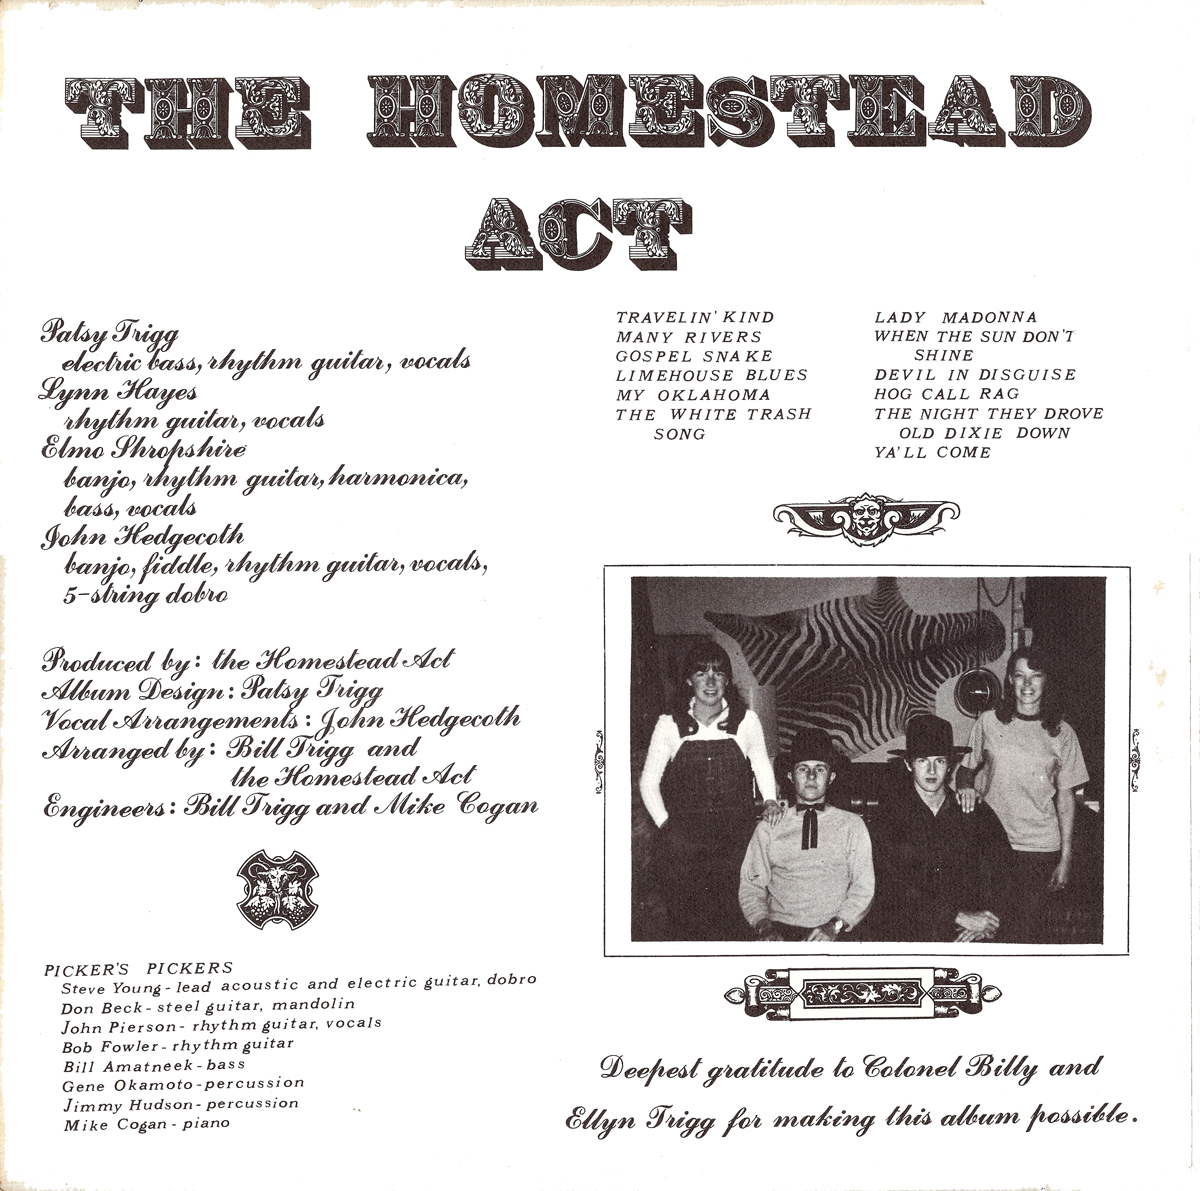 Ghostcapital The Homestead Act Gospel Snake 1972 Kim